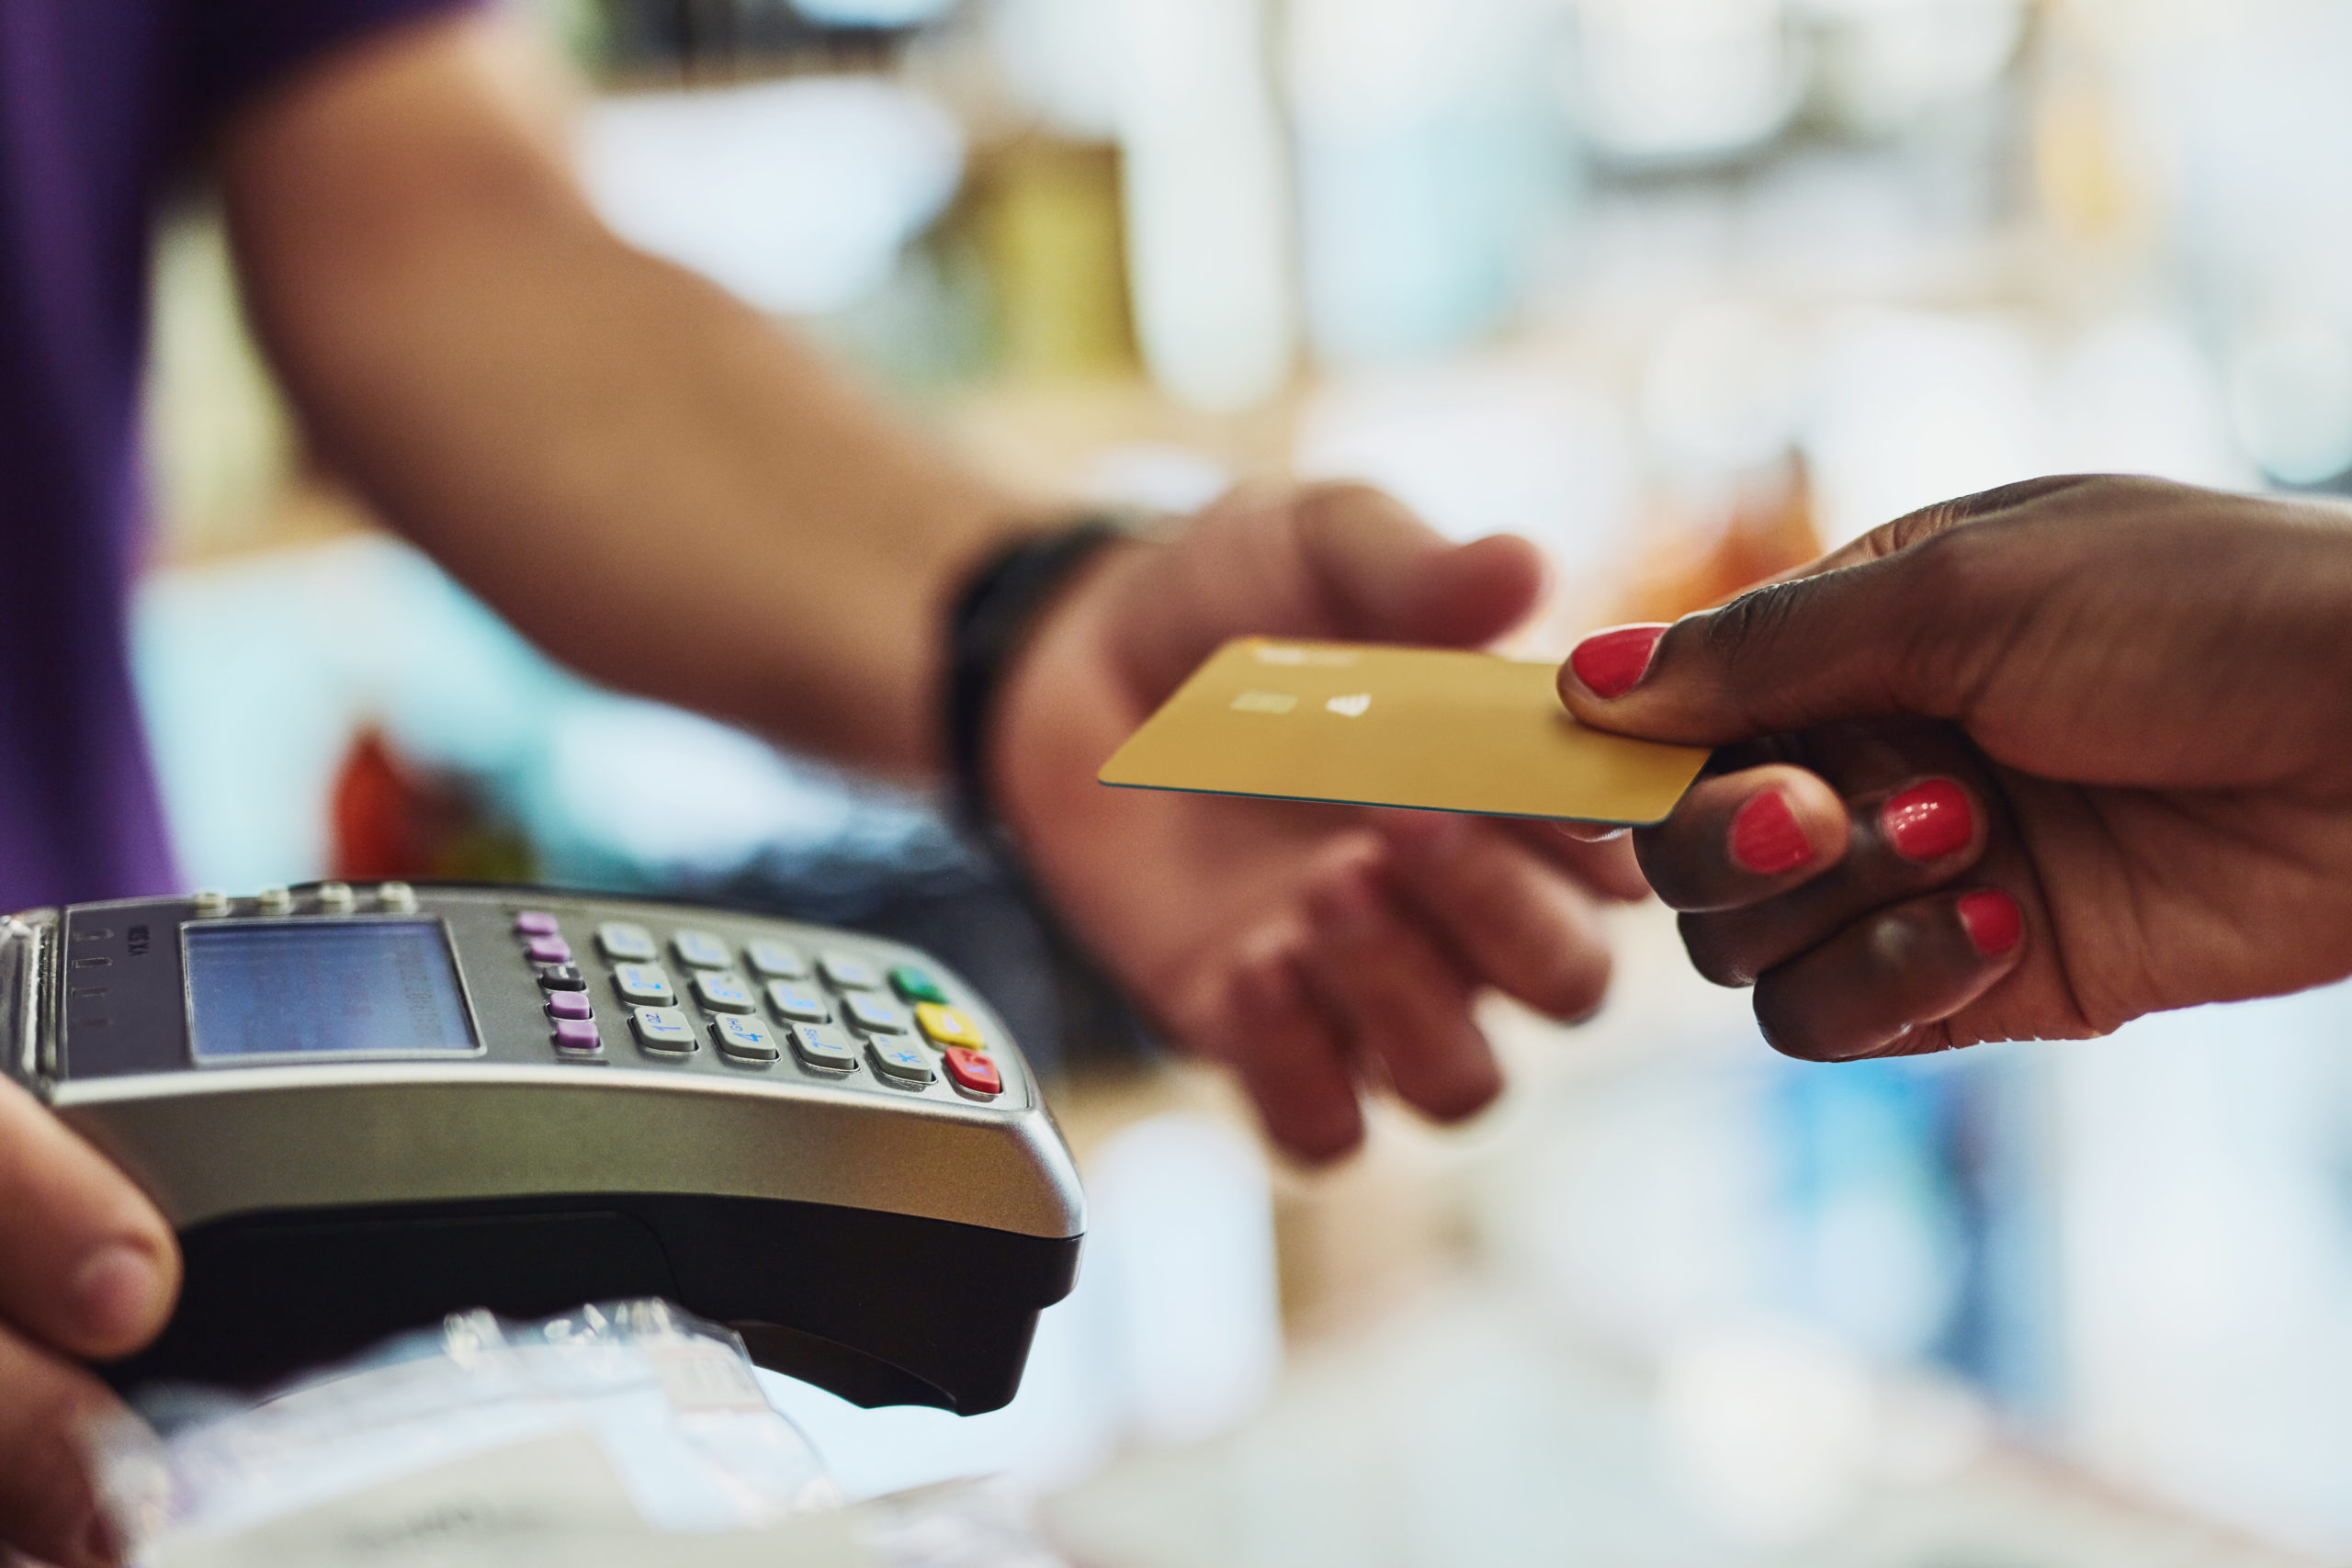 Cropped shot of an unrecognizable customer making payment in a store